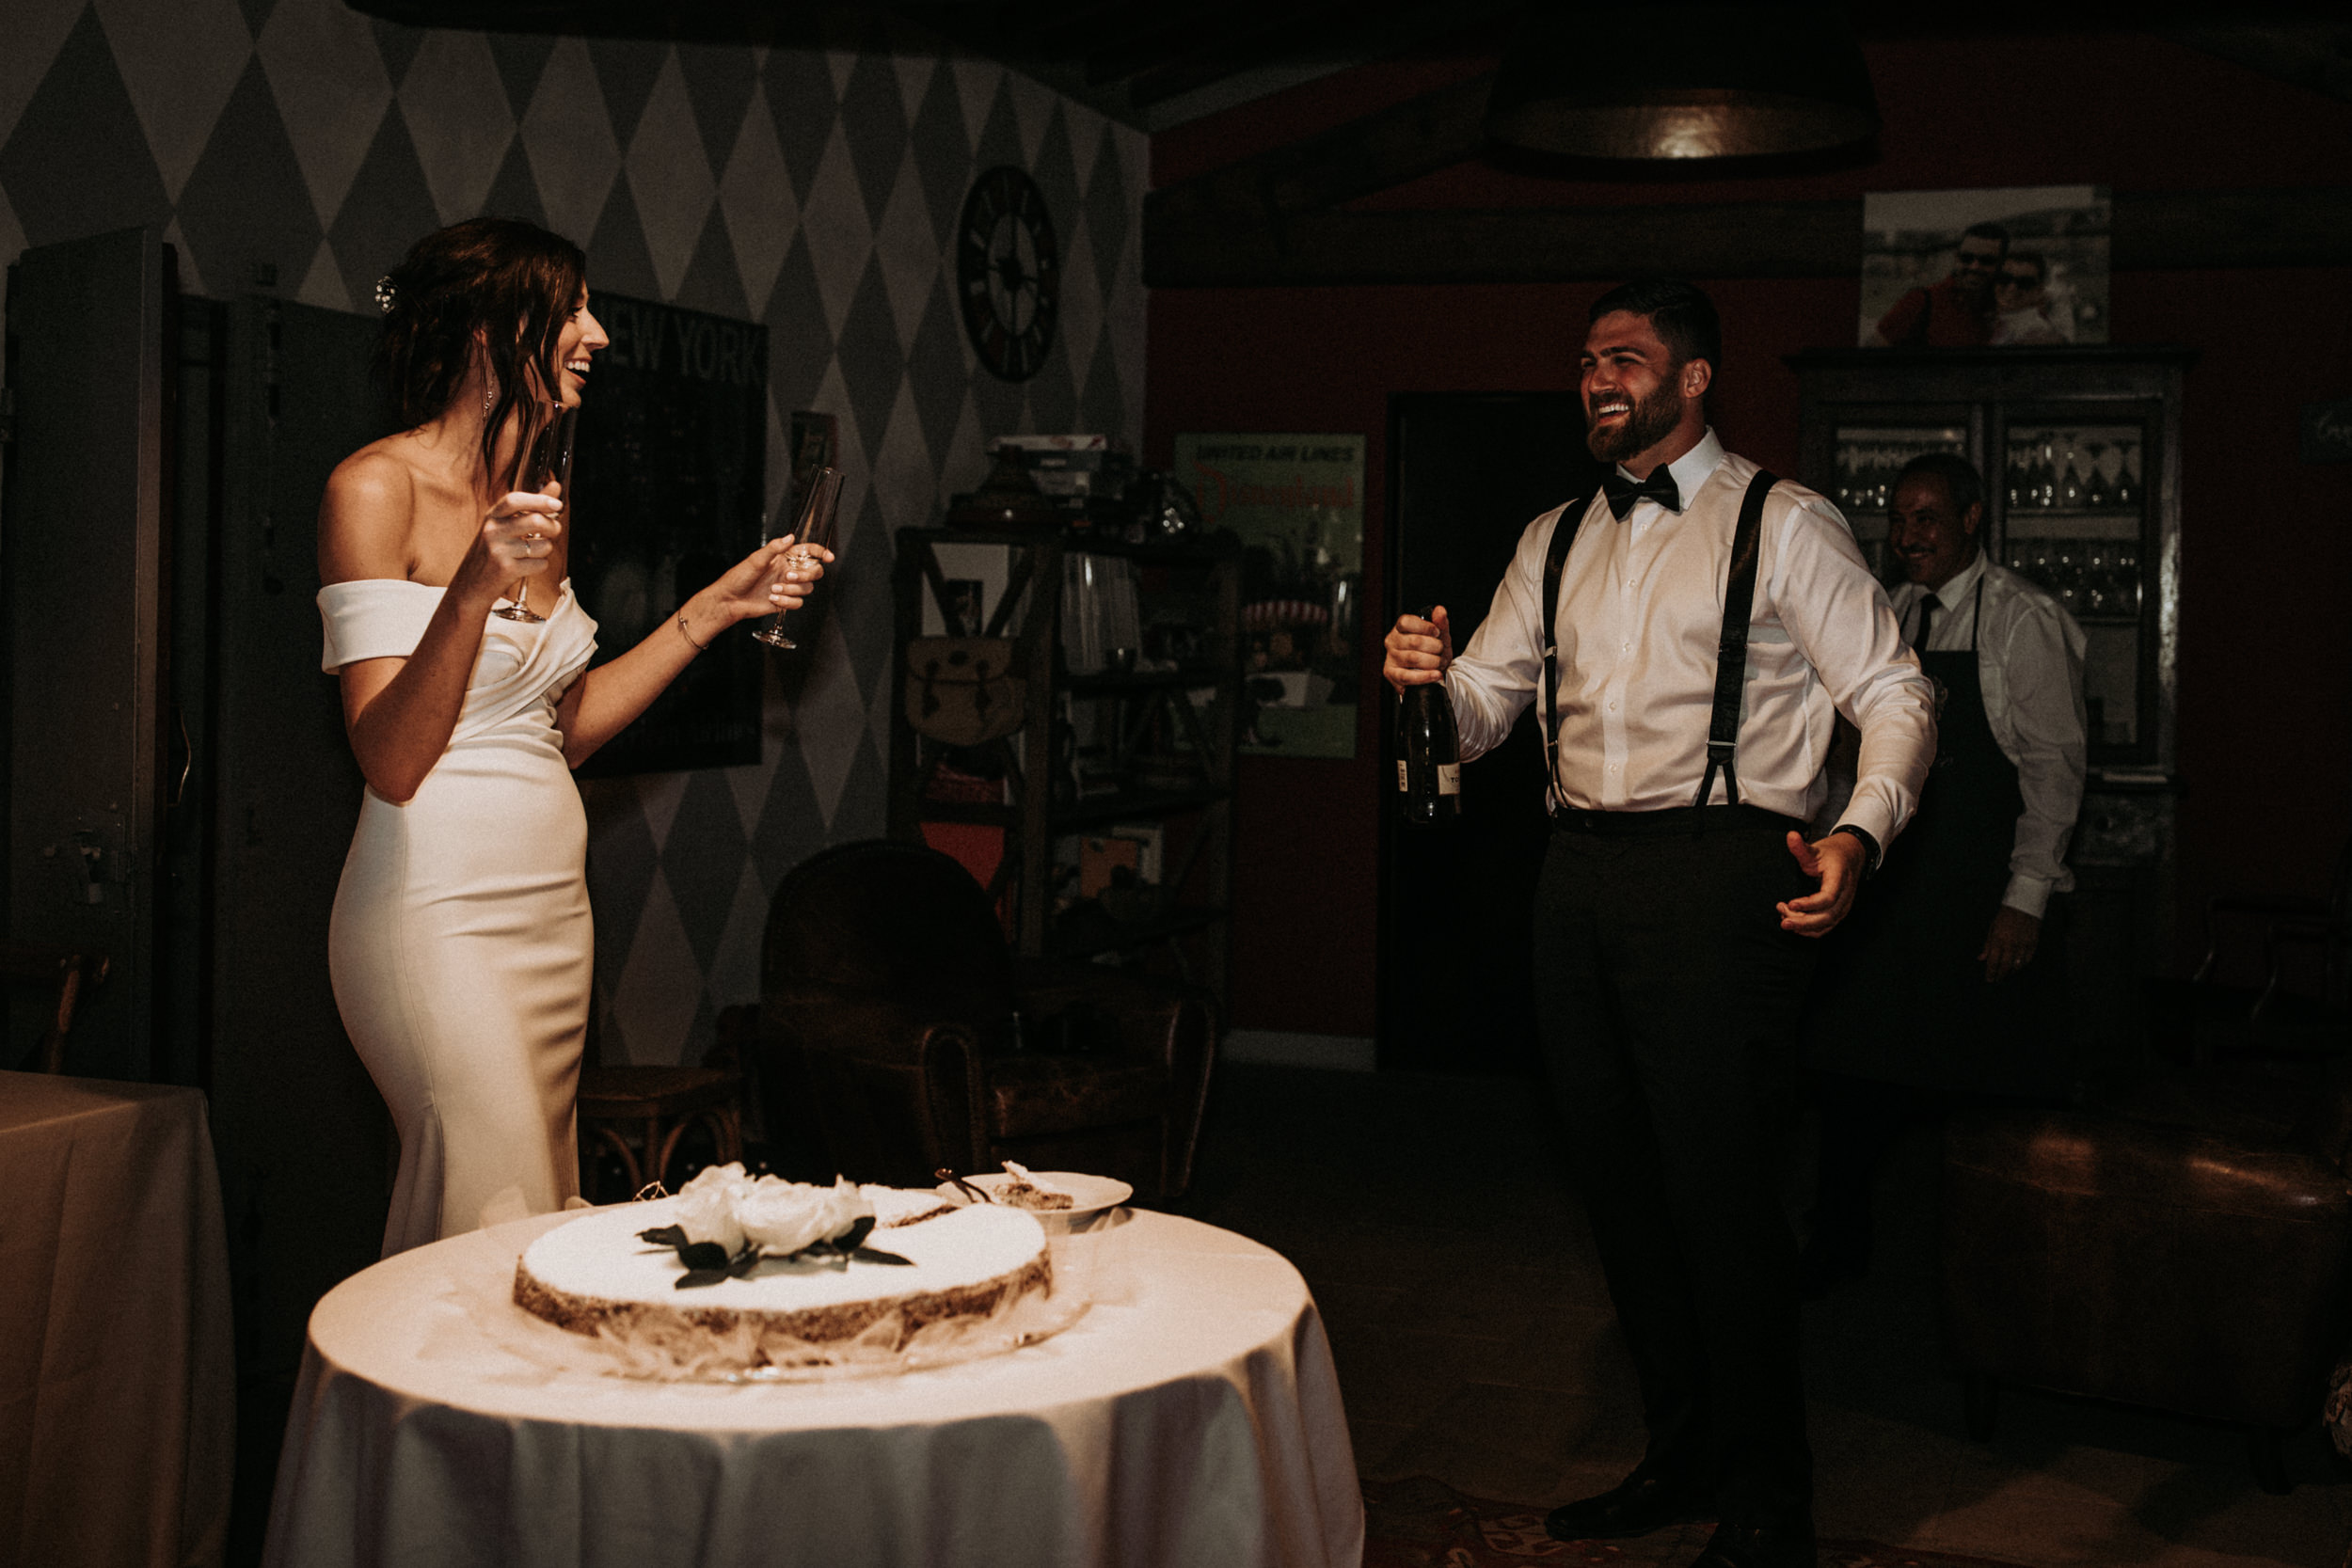 dm_photography_KW_Tuscanyweddingday_429